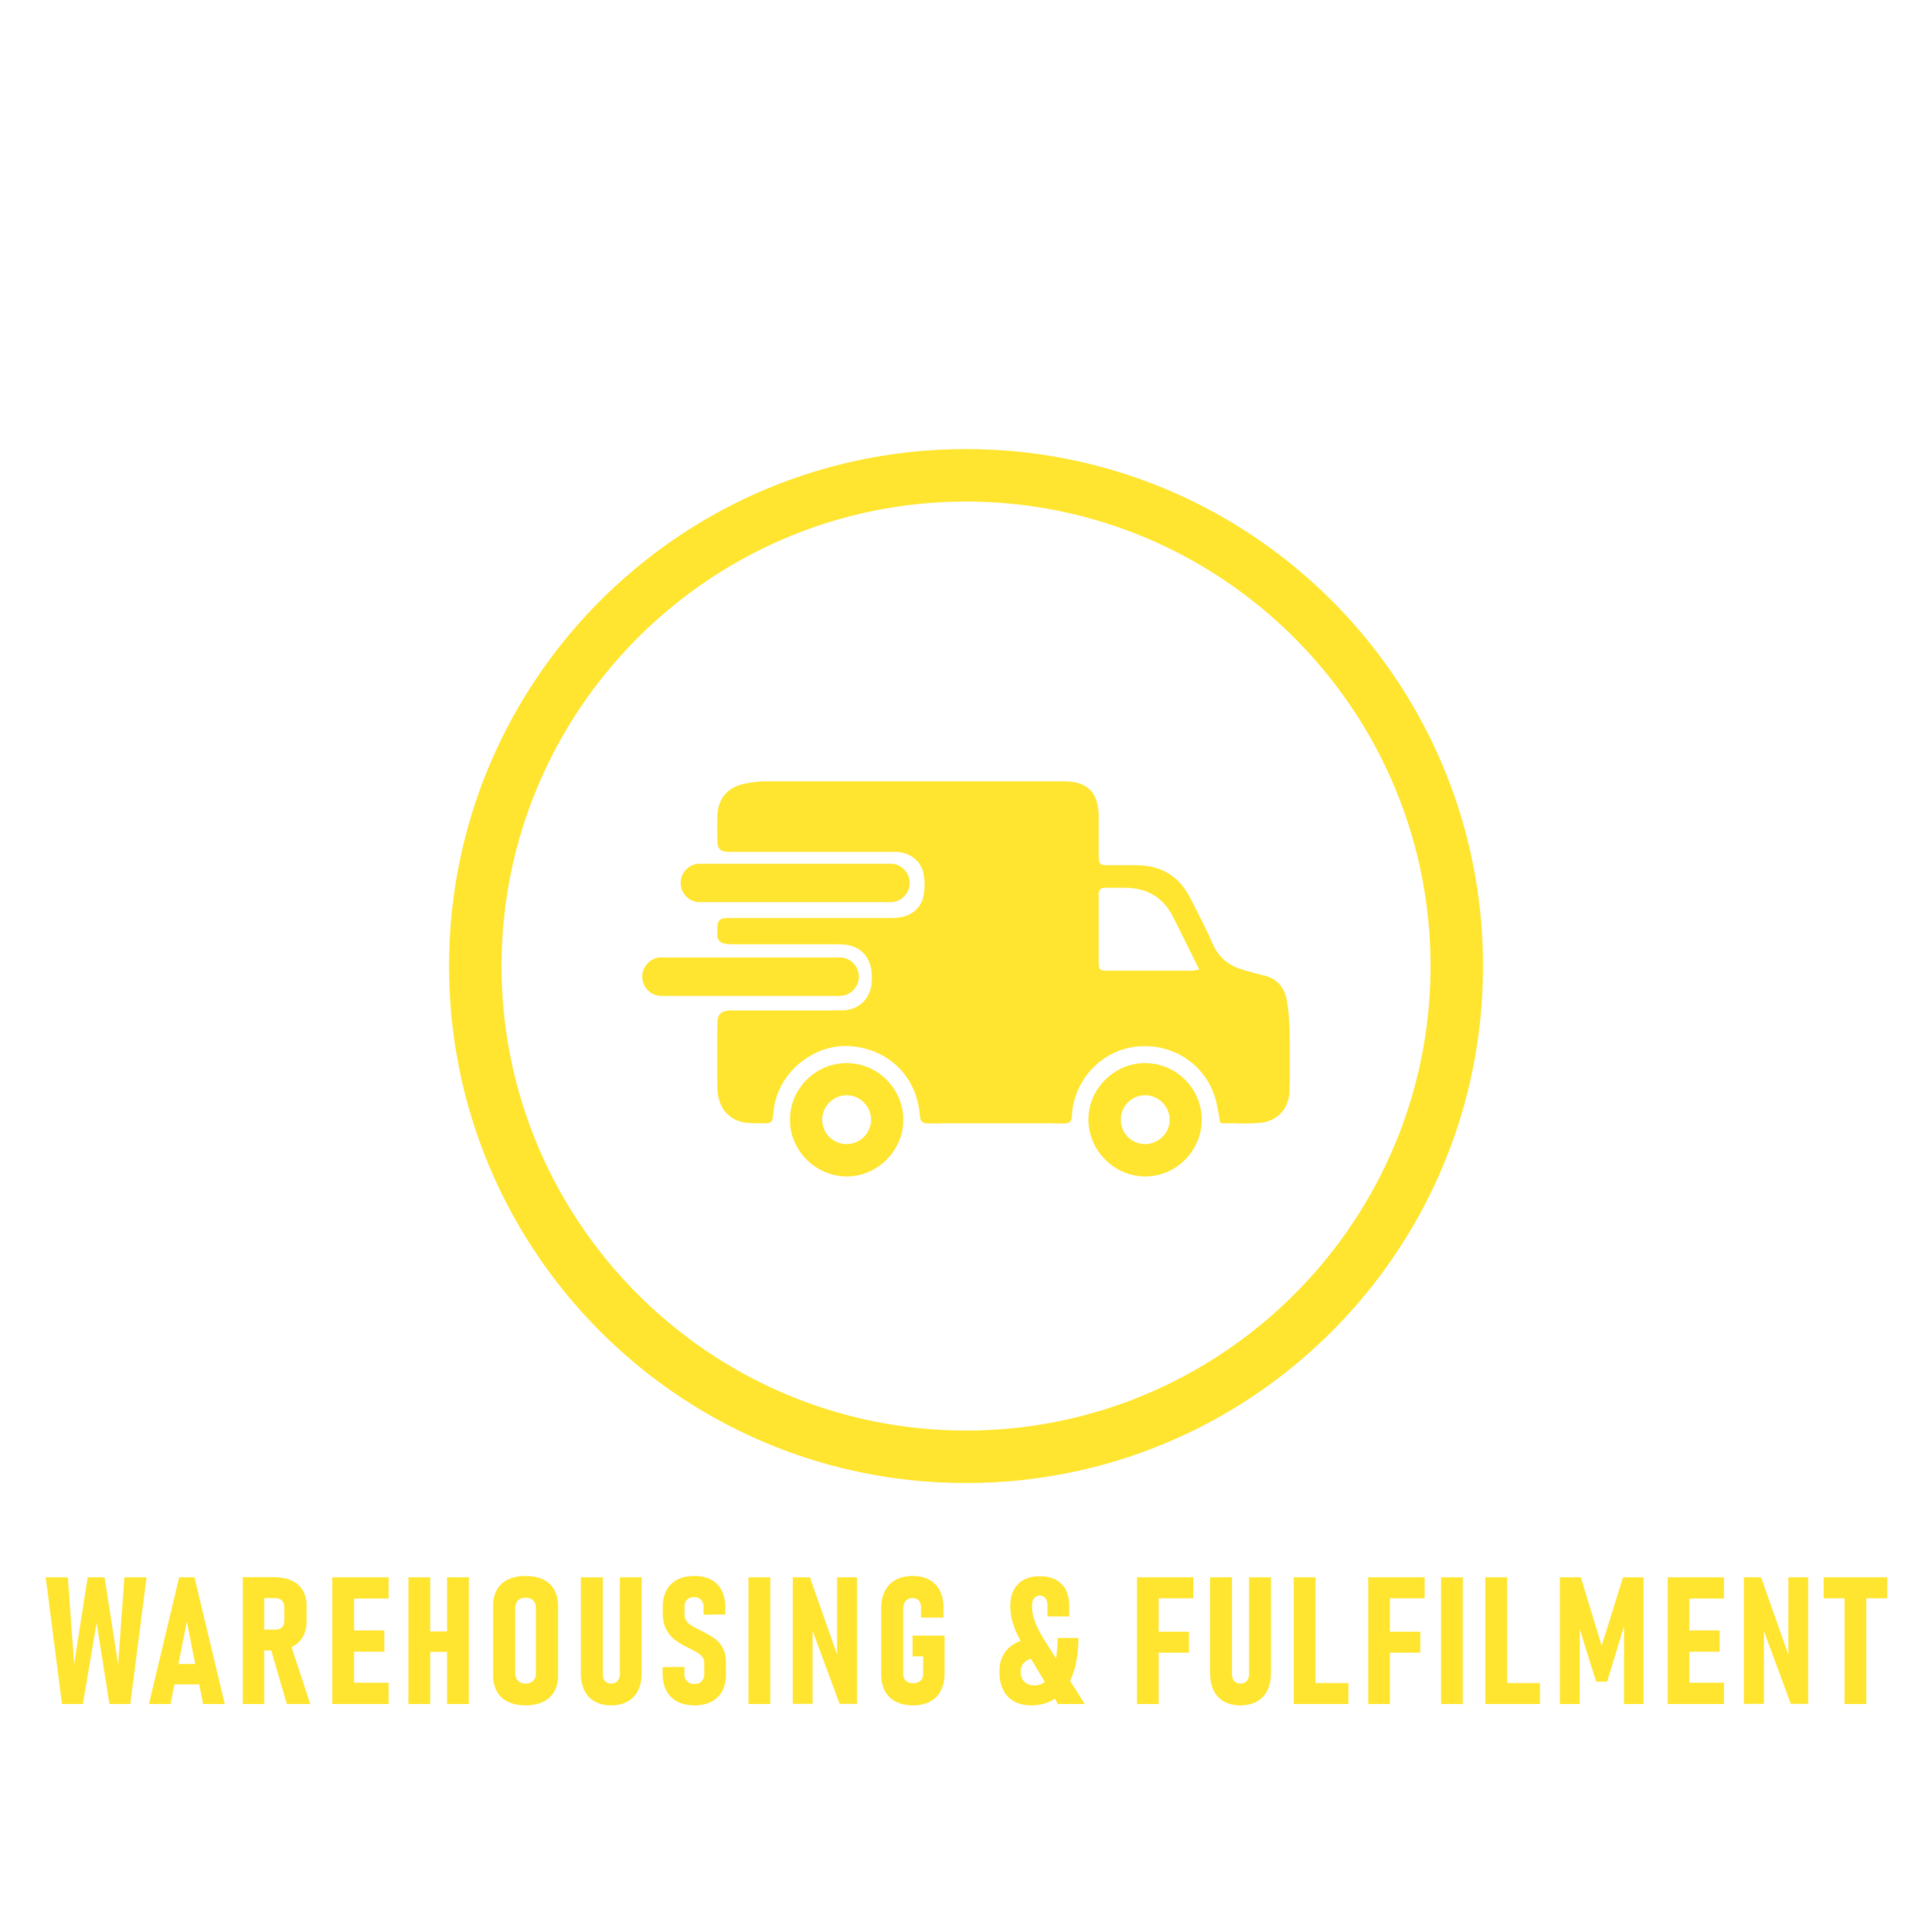 soniaturnbull_WAREHOUSINGFULFILMENT (3).png